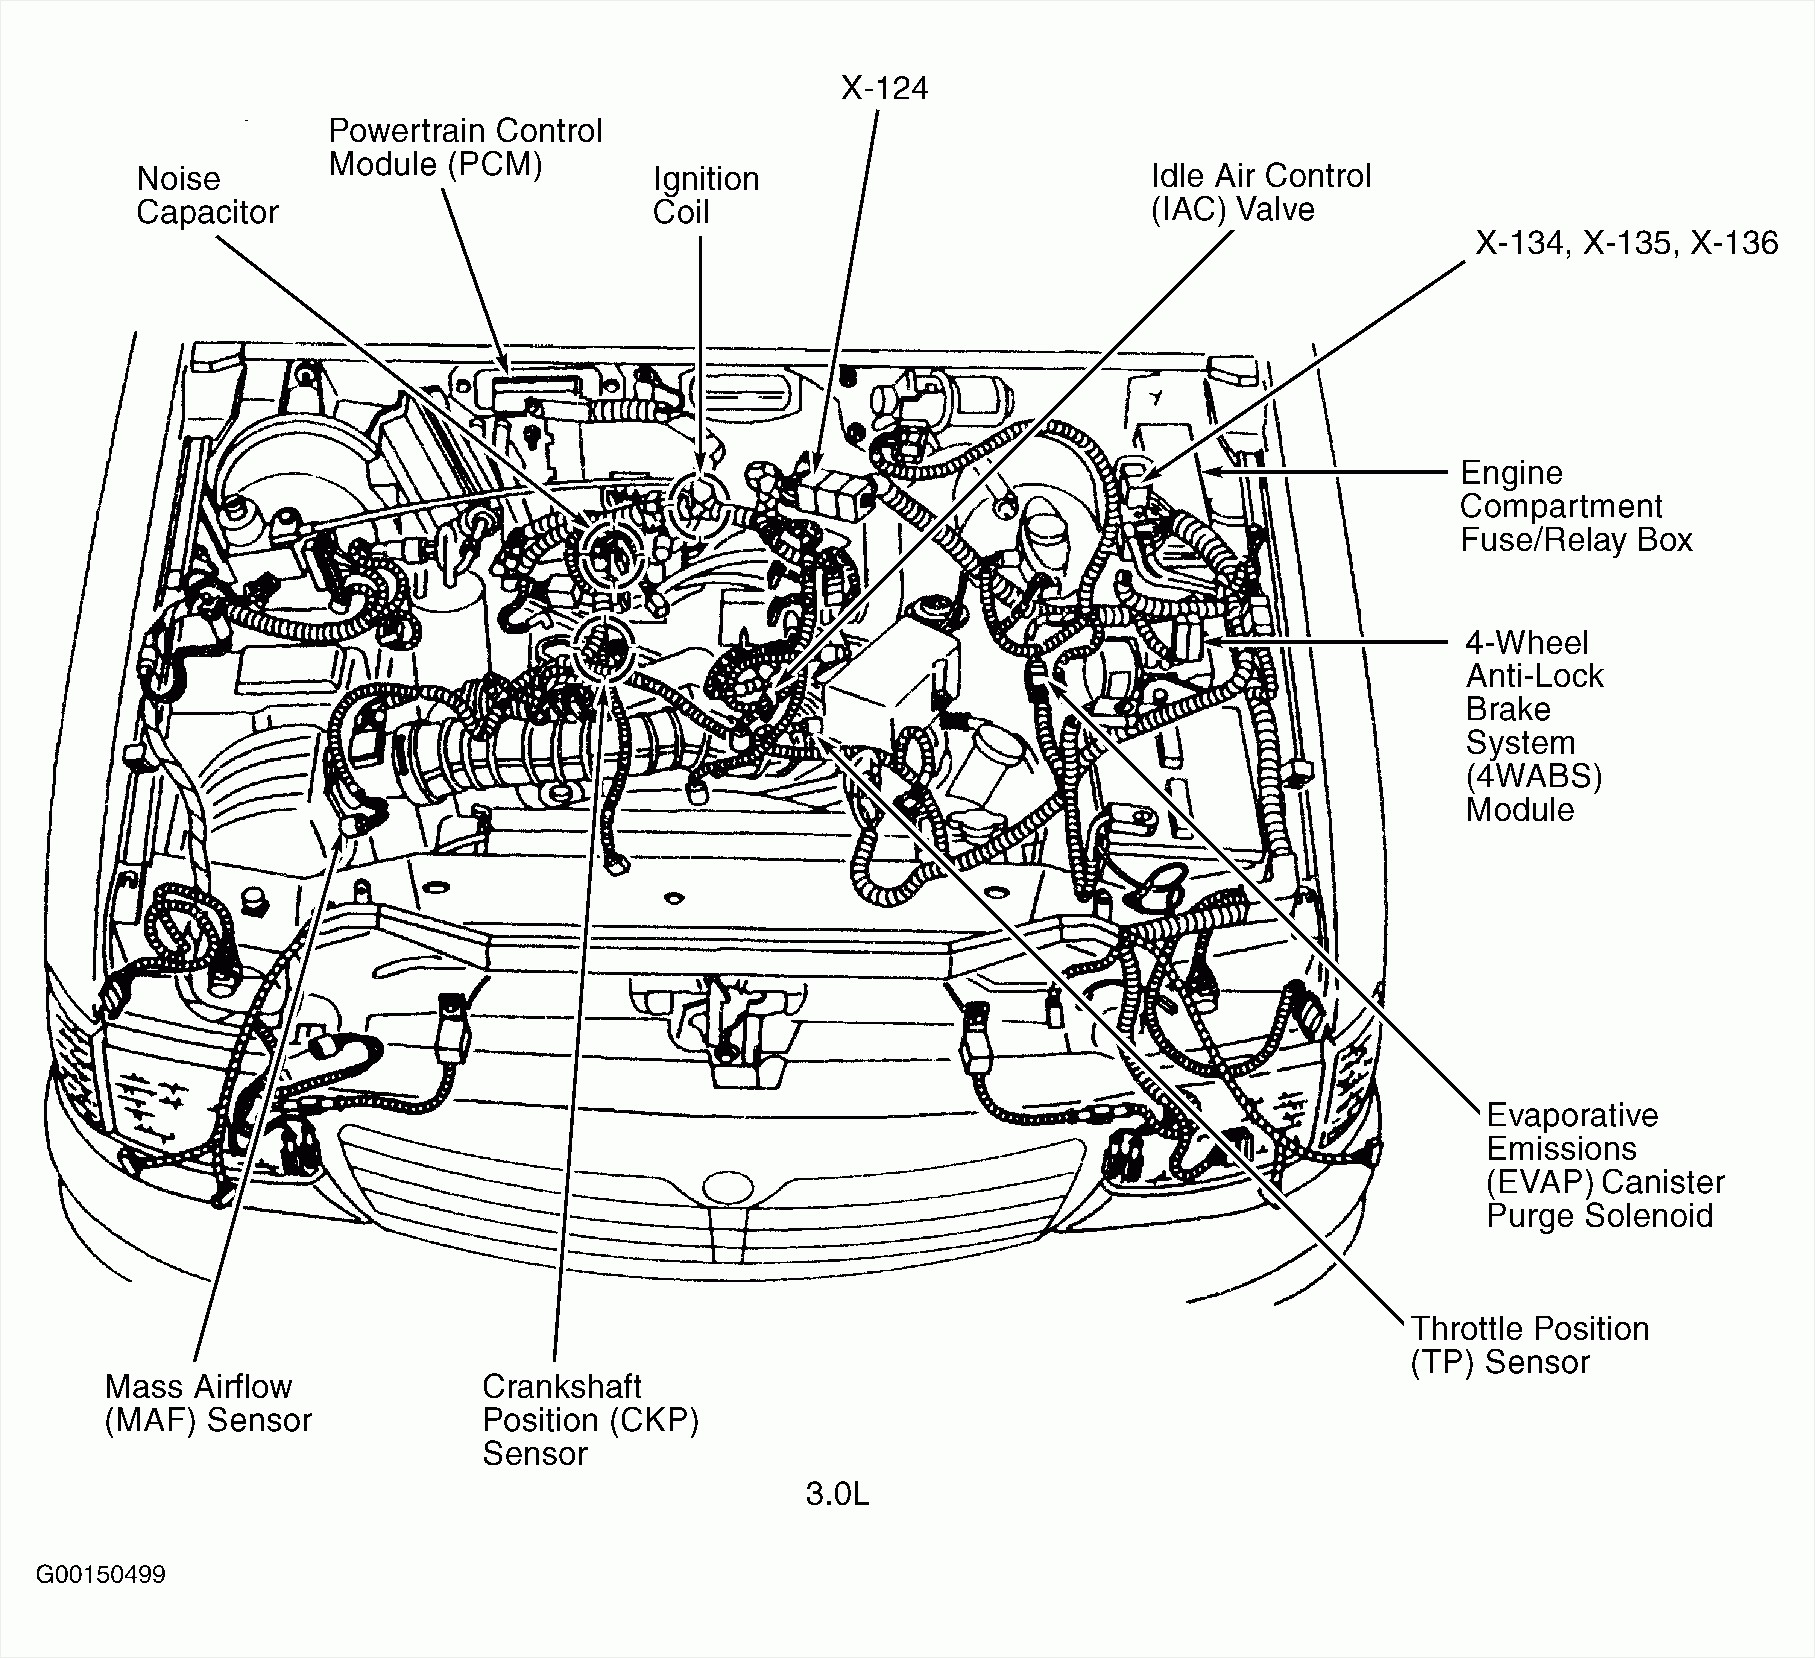 dodge 3 3l engine diagram schematics wiring diagrams u2022 rh  seniorlivinguniversity co 1998 Dodge Caravan Engine